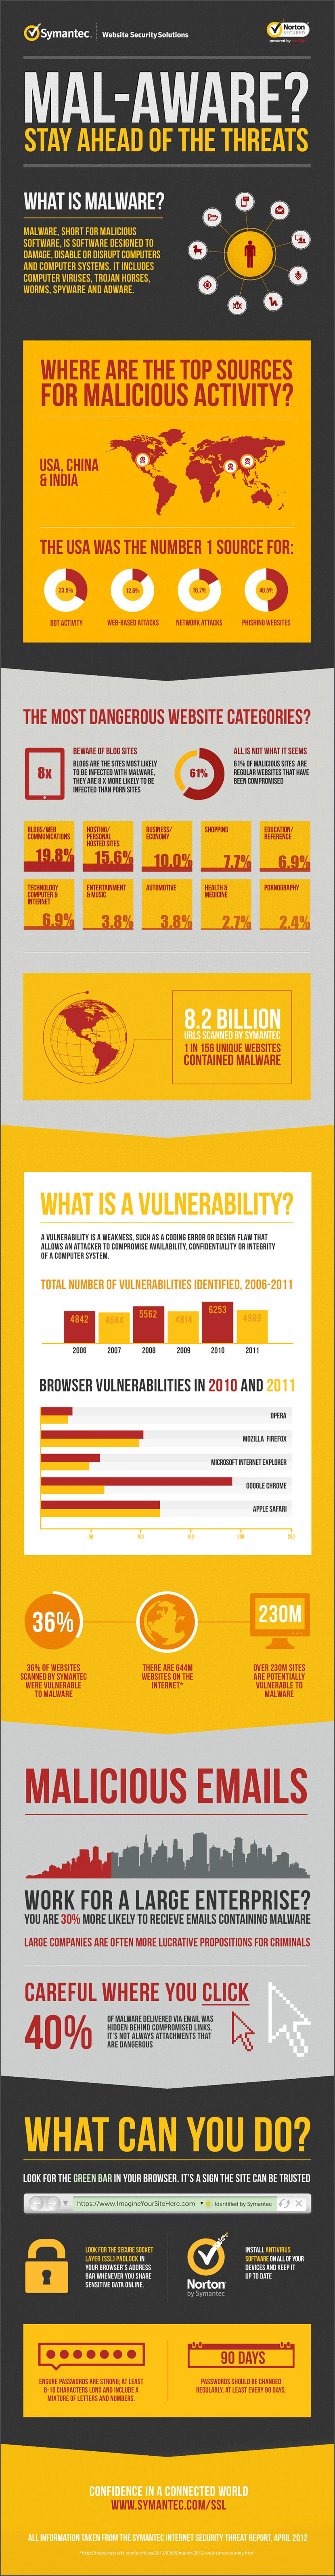 symantec malaware uk antivirus norton infographic